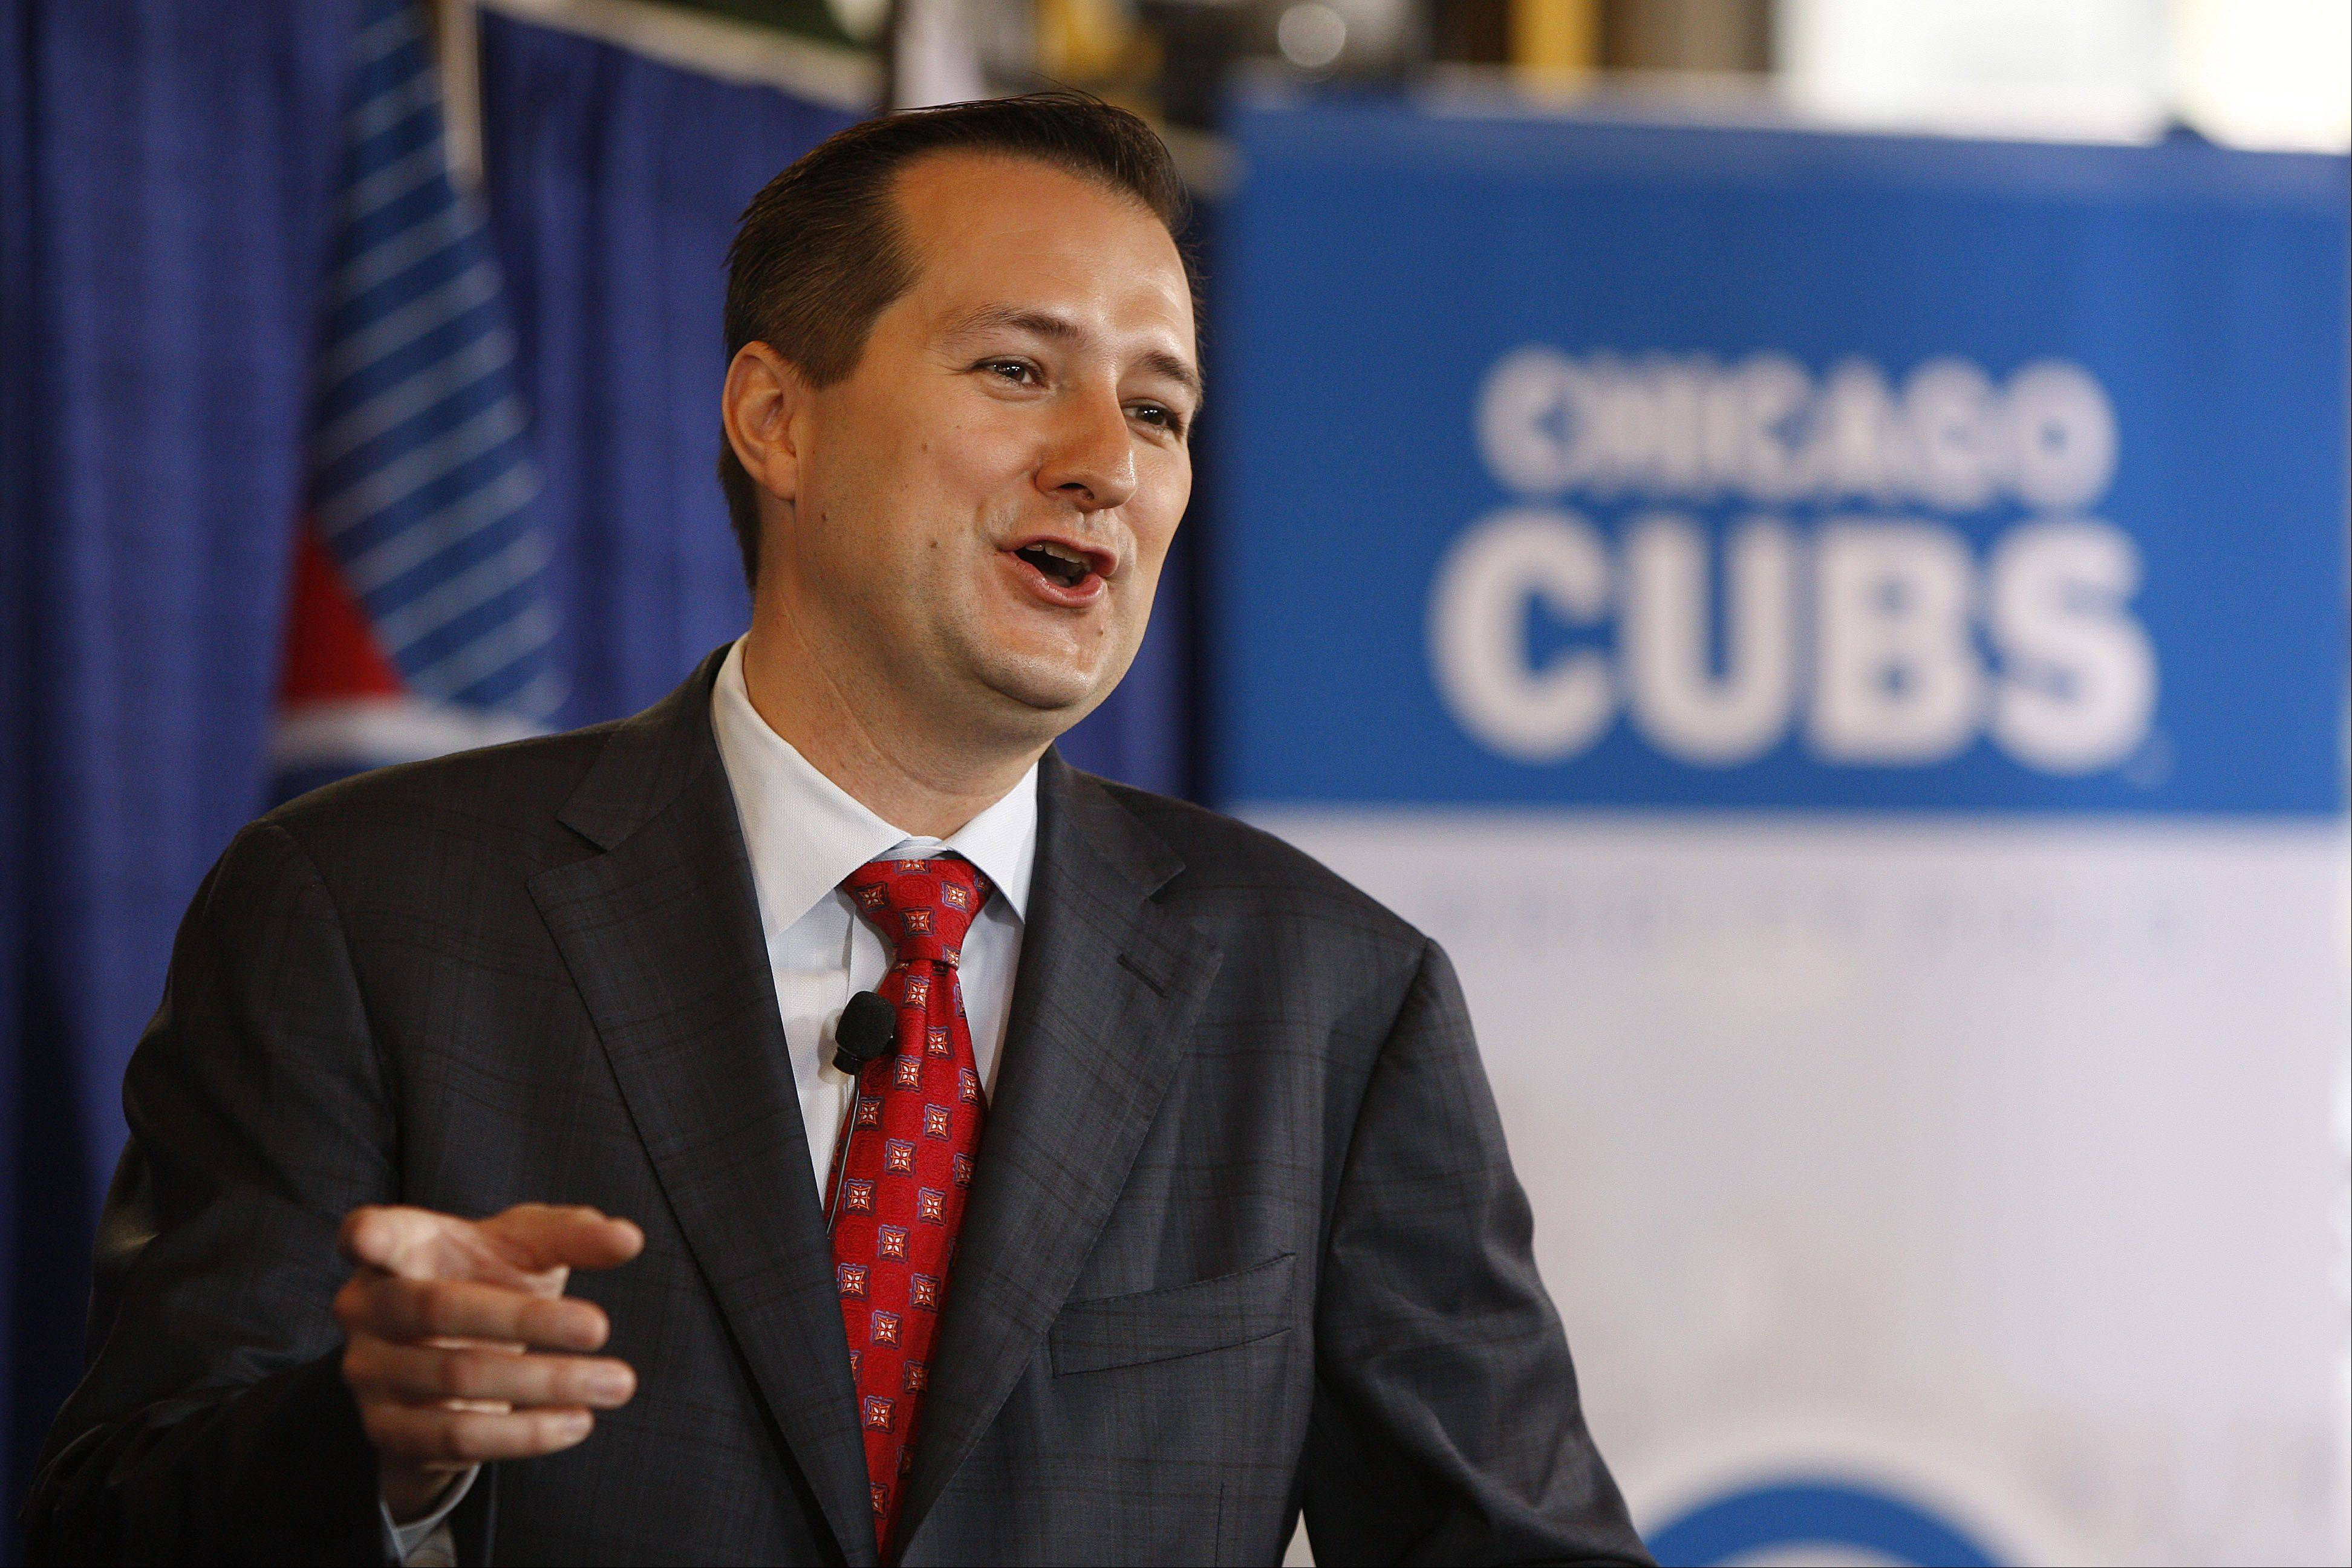 Tom Ricketts talks about his family's new ownership of the Chicago Cubs baseball club during a news conference at Wrigley Field, on Friday, Oct. 30, 2009, in Chicago. (AP Photo/Jim Prisching)